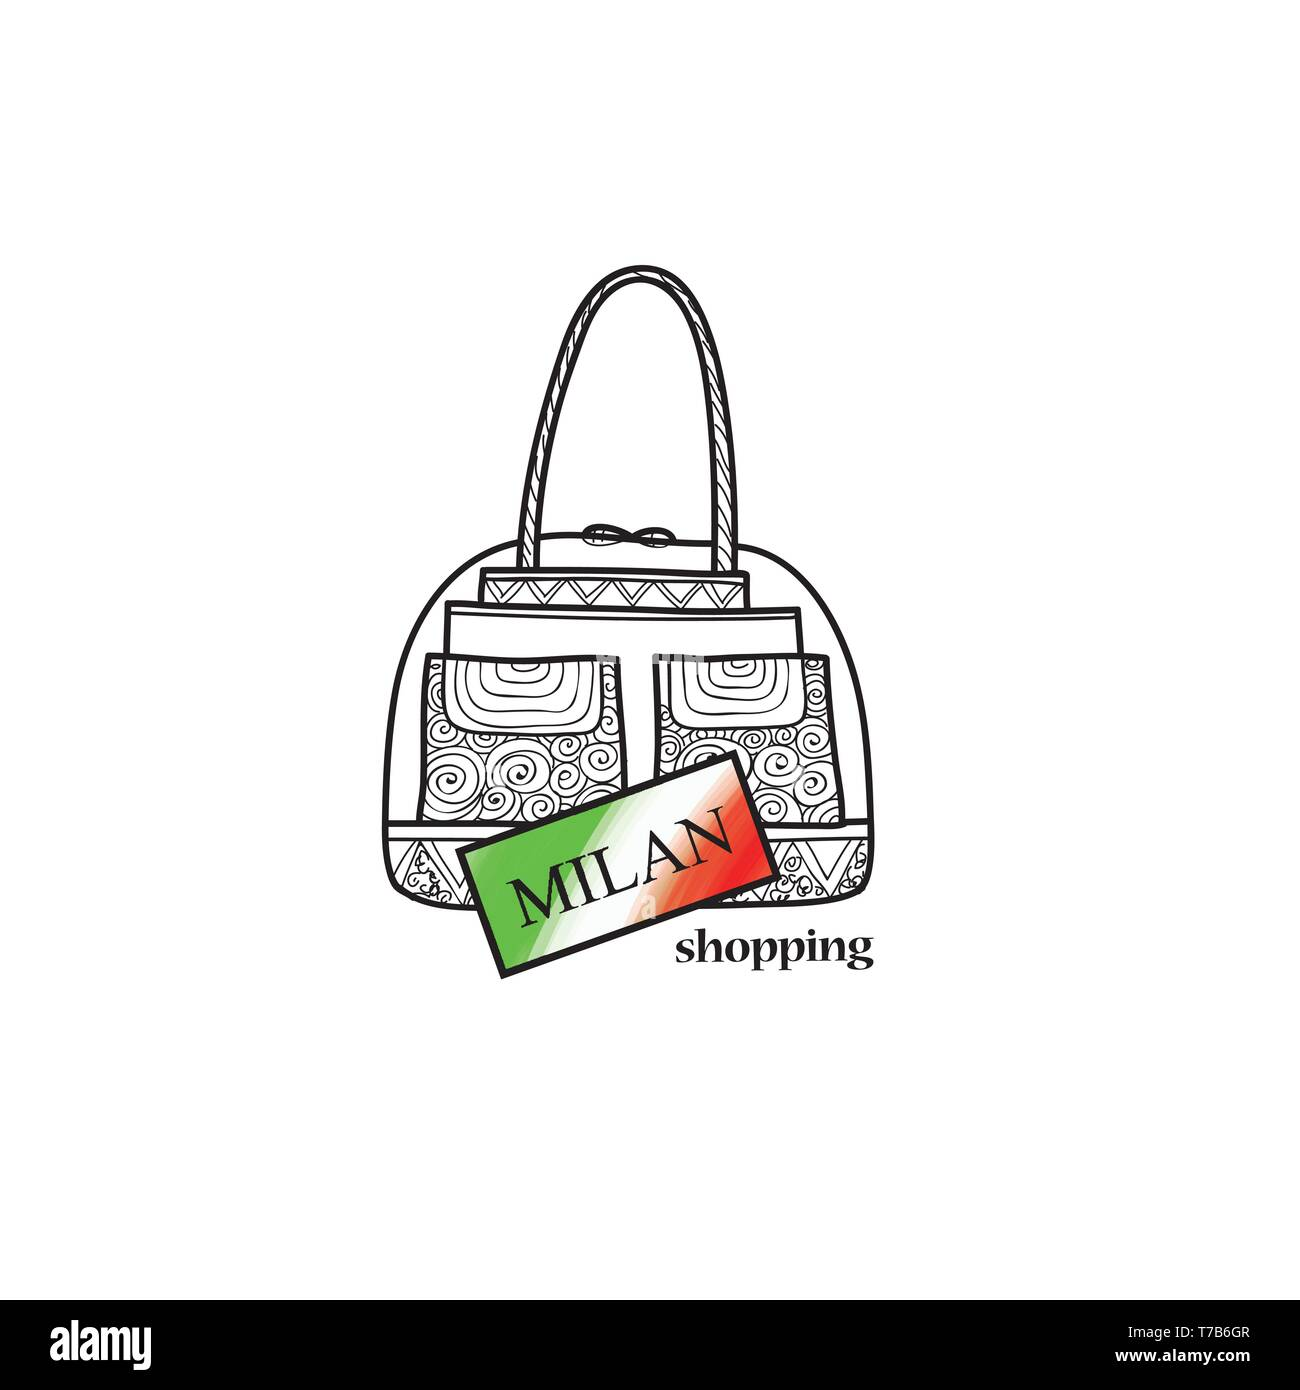 Italy travel sign. Milan city shopping label. Shop bag italian symbol. Fashion icon. Stock Vector